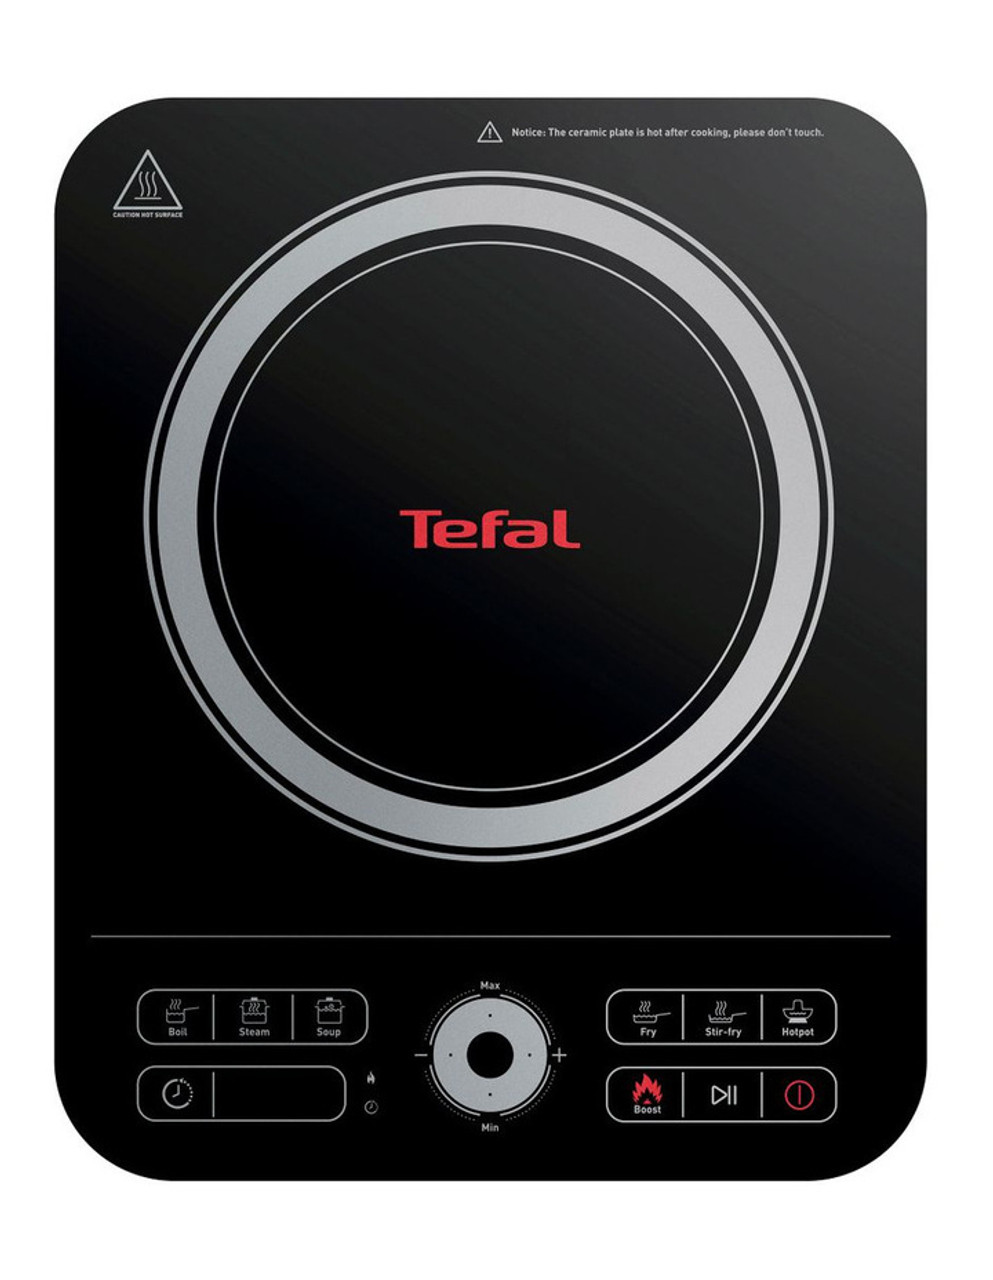 Tefal IH720860 Express Induction Hob with Cooking Timer and Digital Display